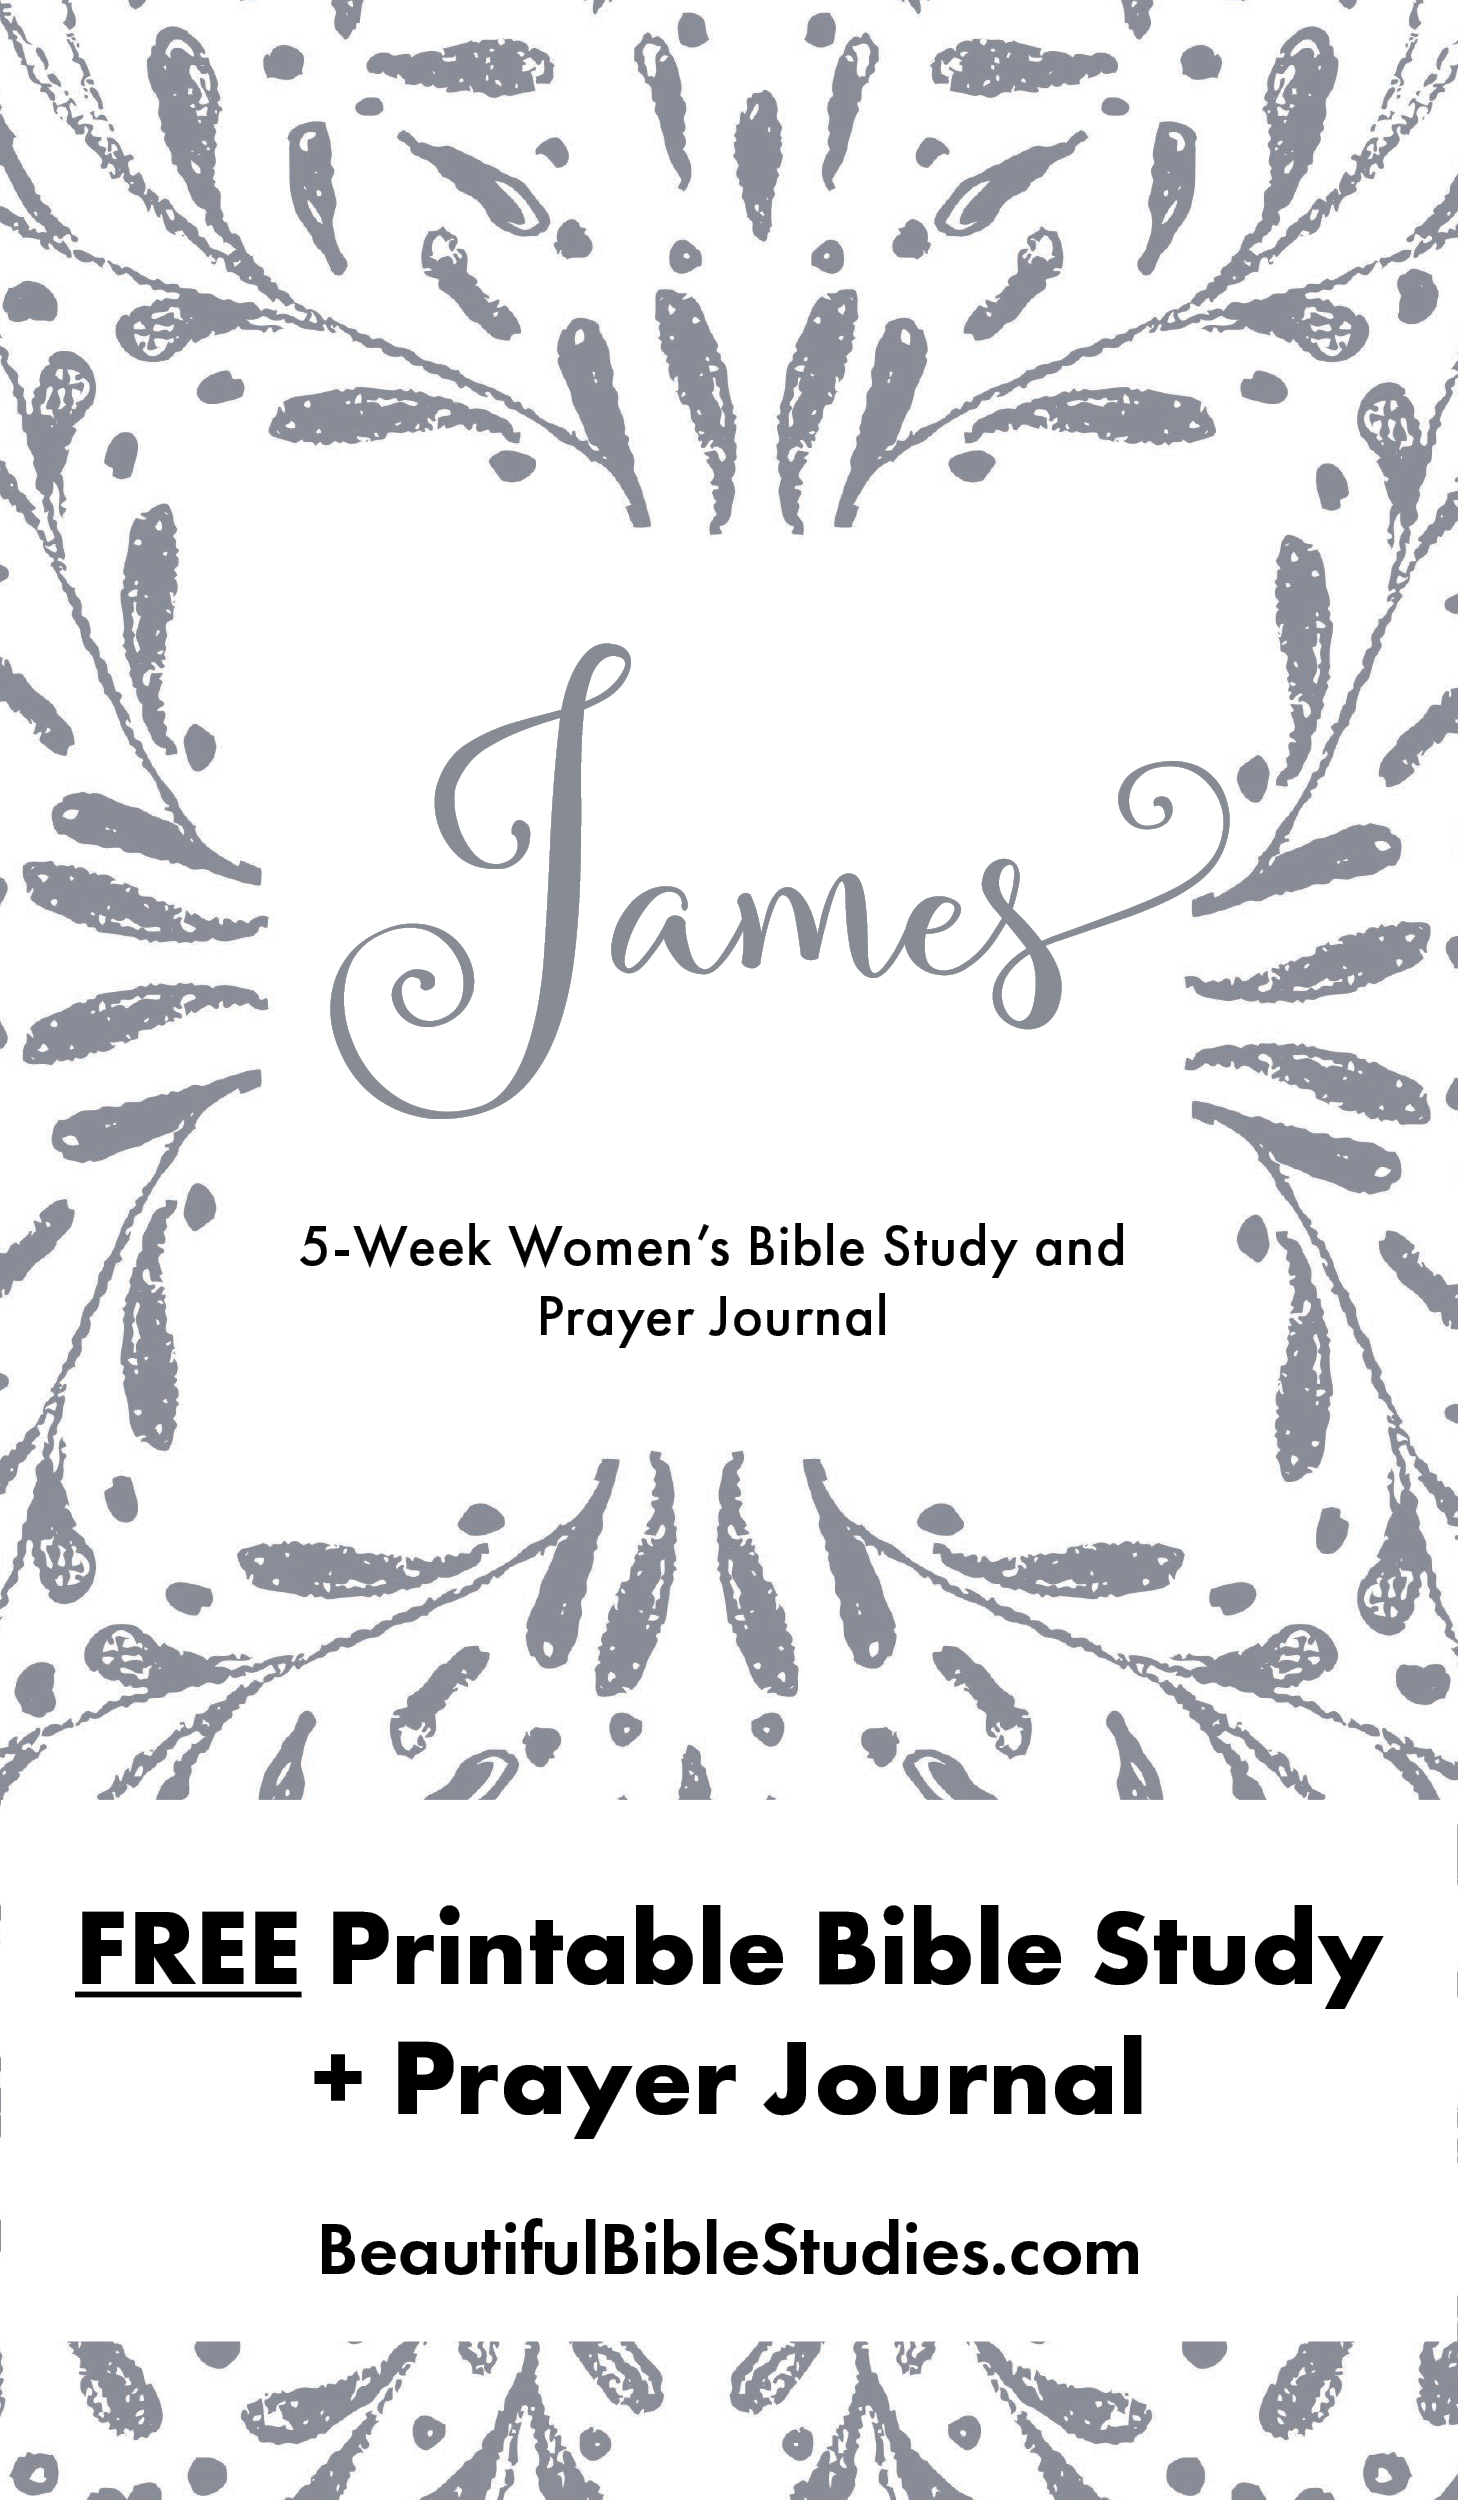 graphic about Printable Bible Study Guide identified as Printable Bible Examine Lead World-wide of Reference